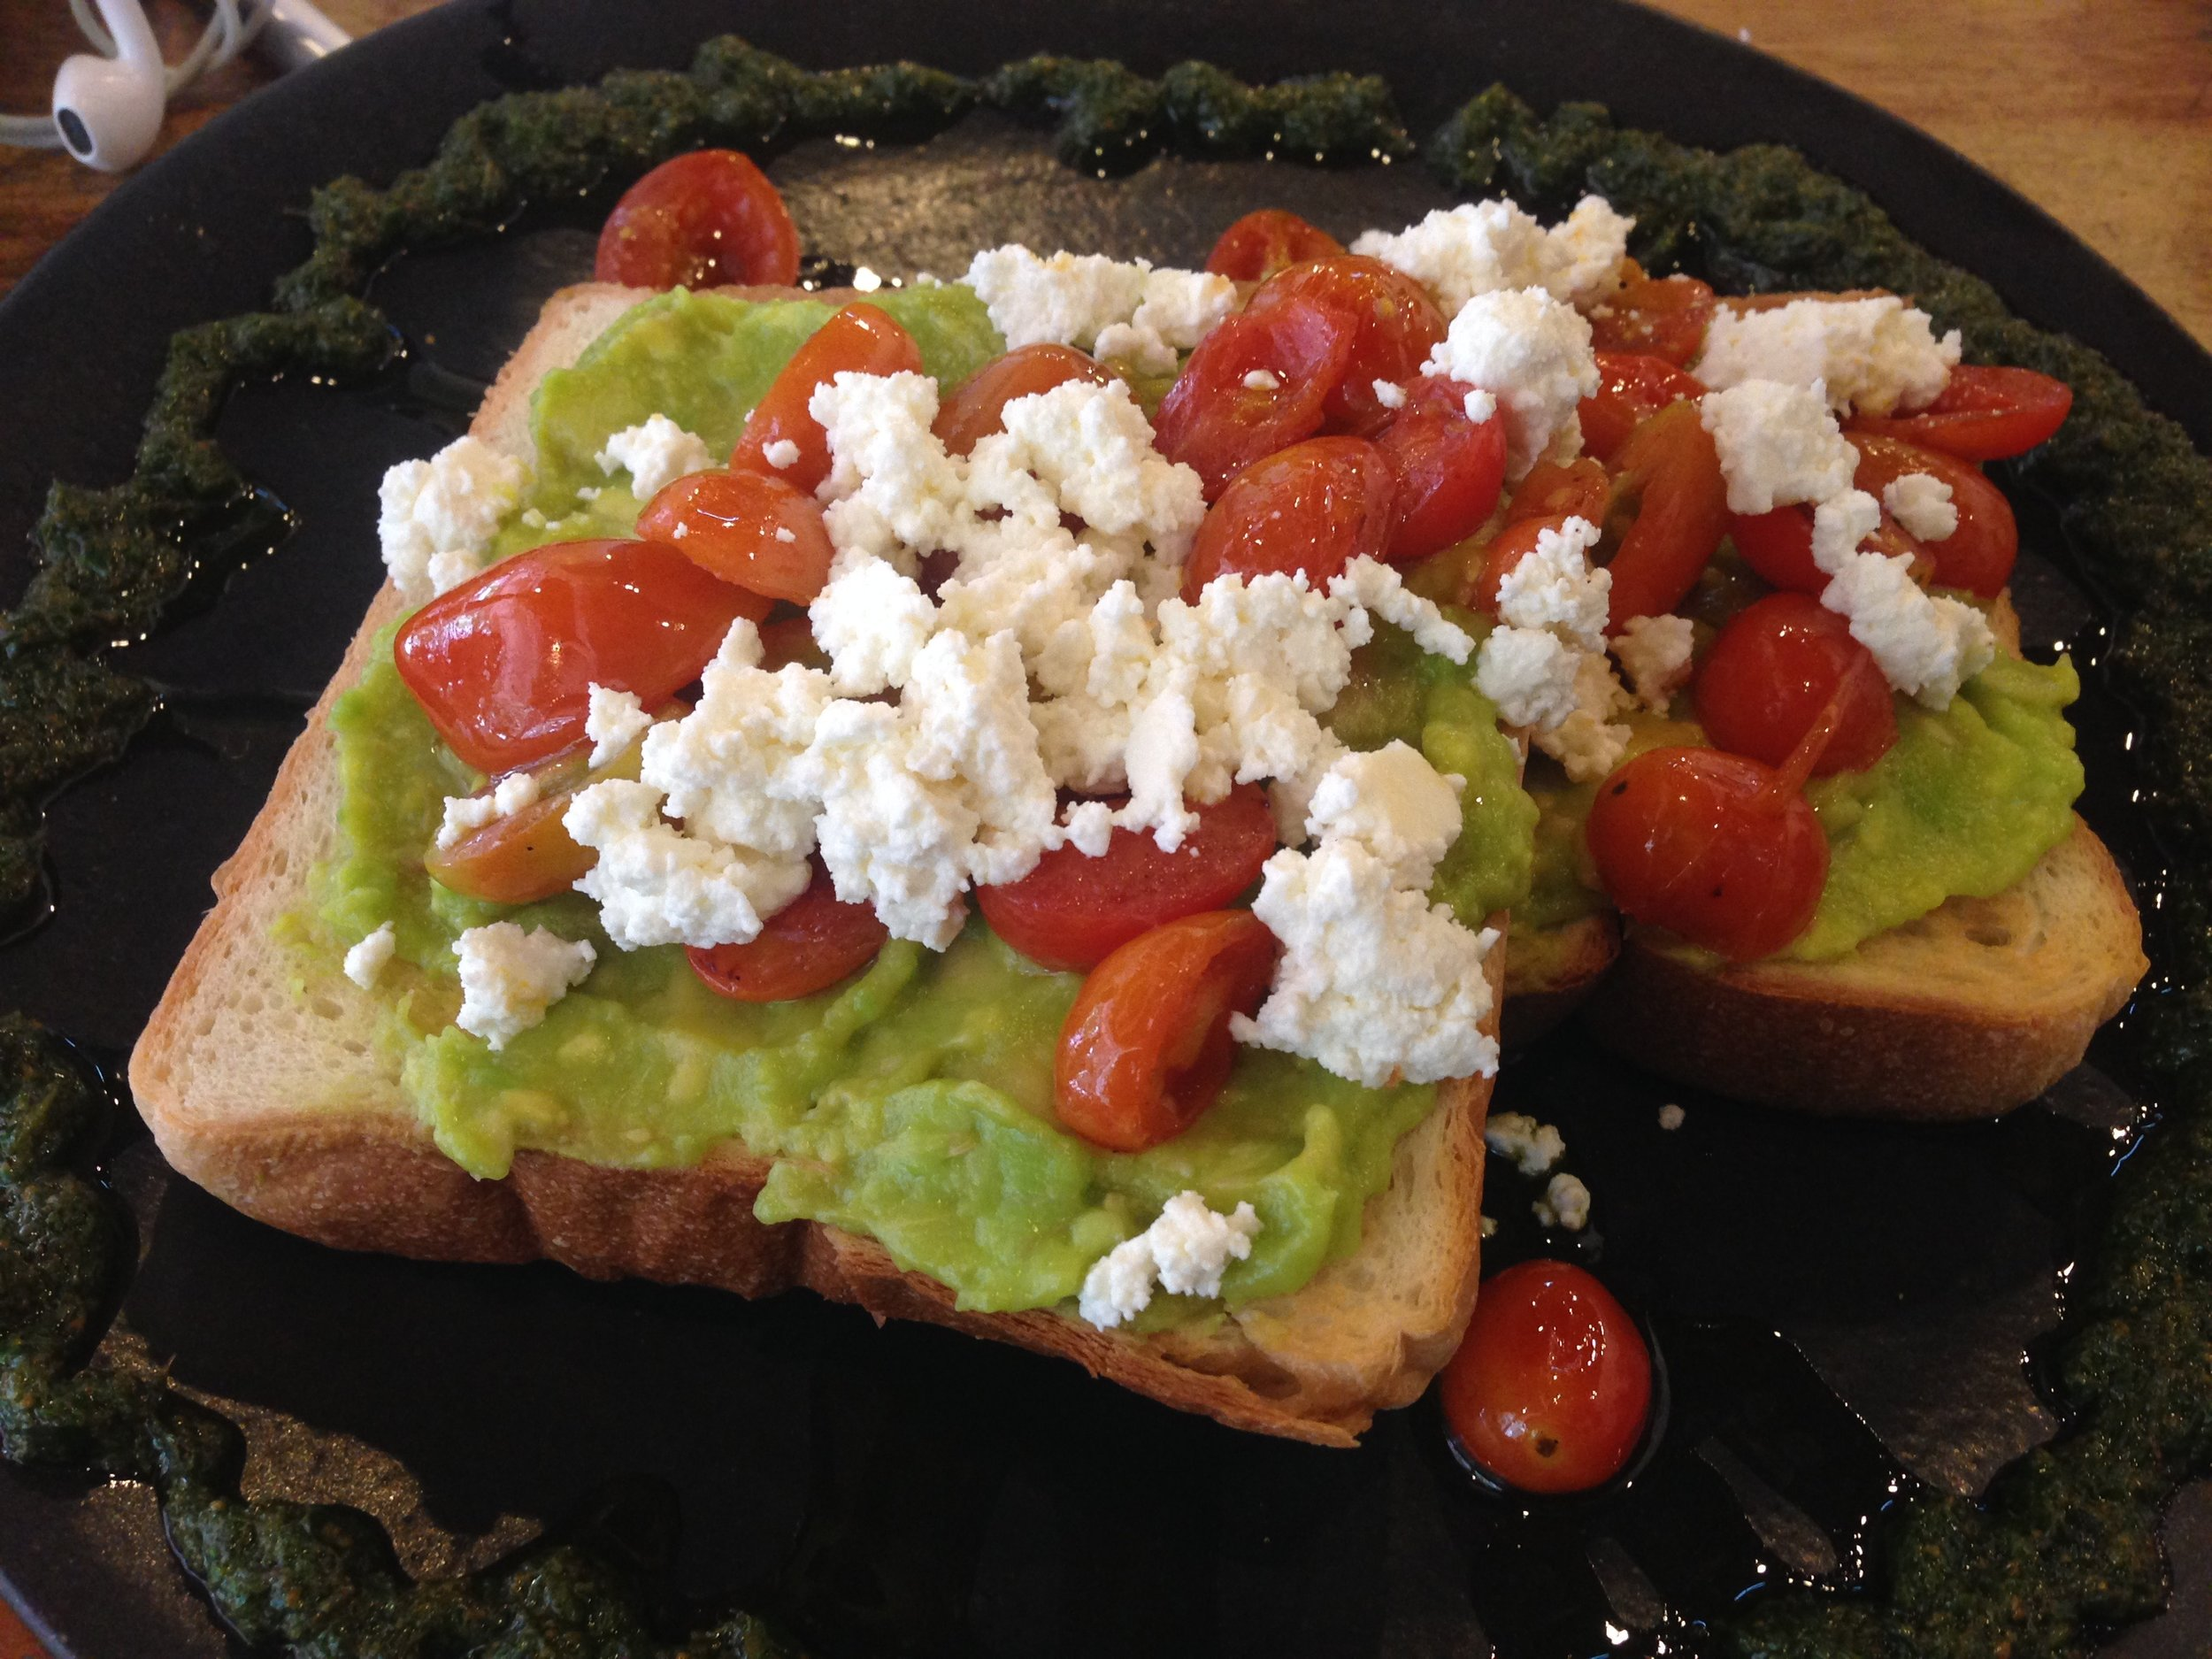 And my all time favorite TAVOCADO! Avocado and tomato smash with crumbled feta on the fluffiest of toast, drizzled with pesto basil cuz whyyyy nottttttt!